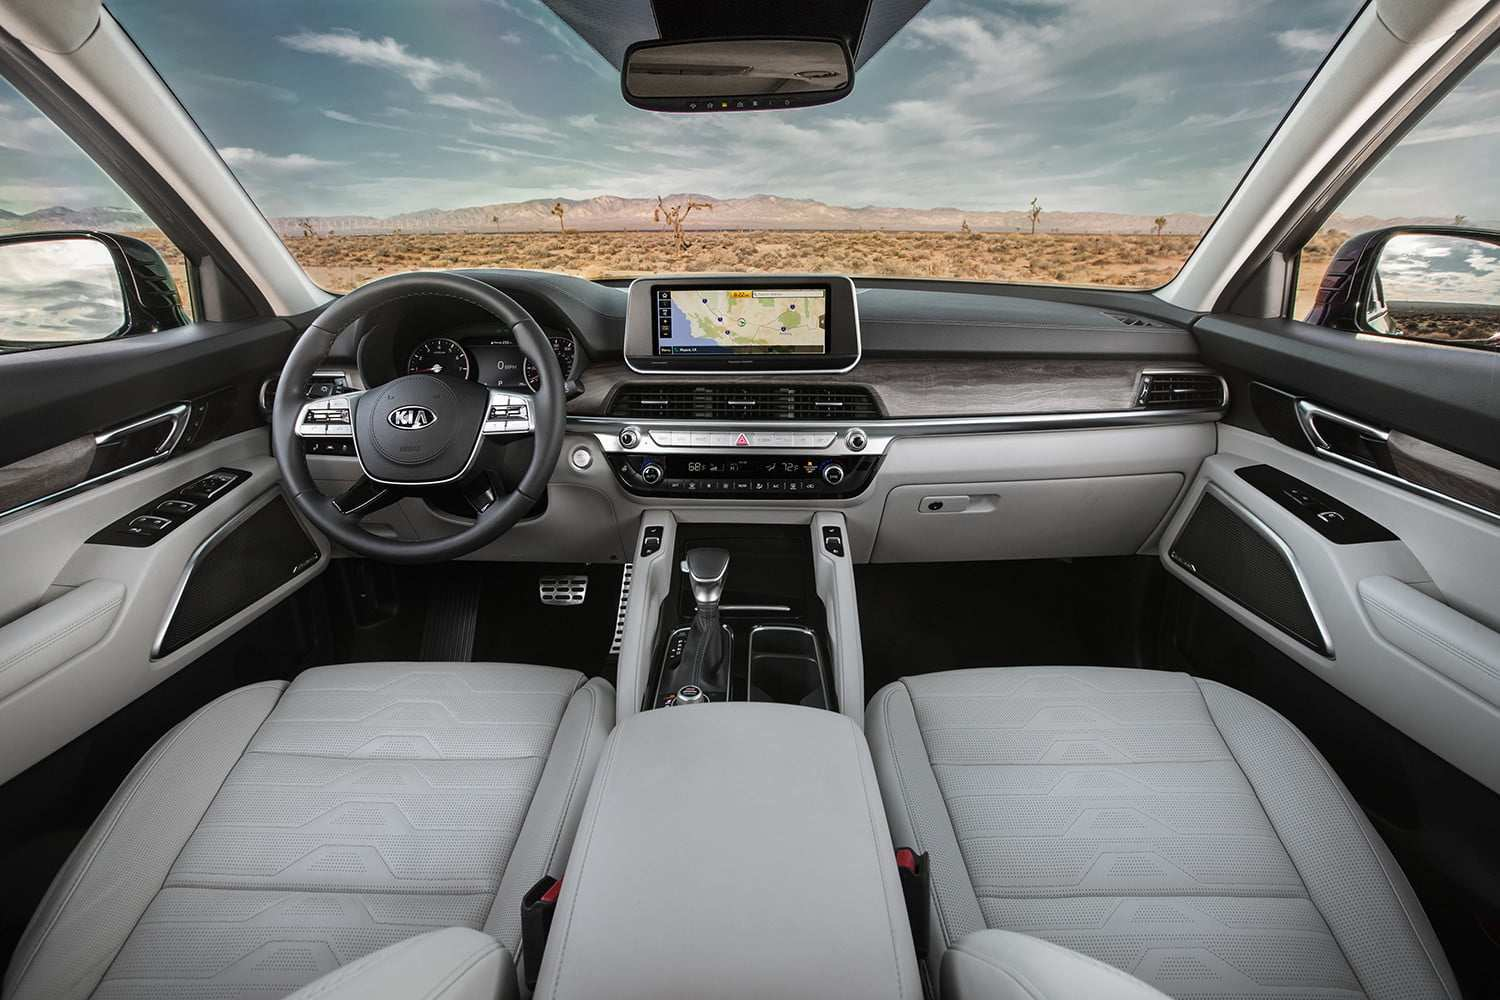 62 Best Review 2020 Kia Telluride Ex Interior Release by 2020 Kia Telluride Ex Interior